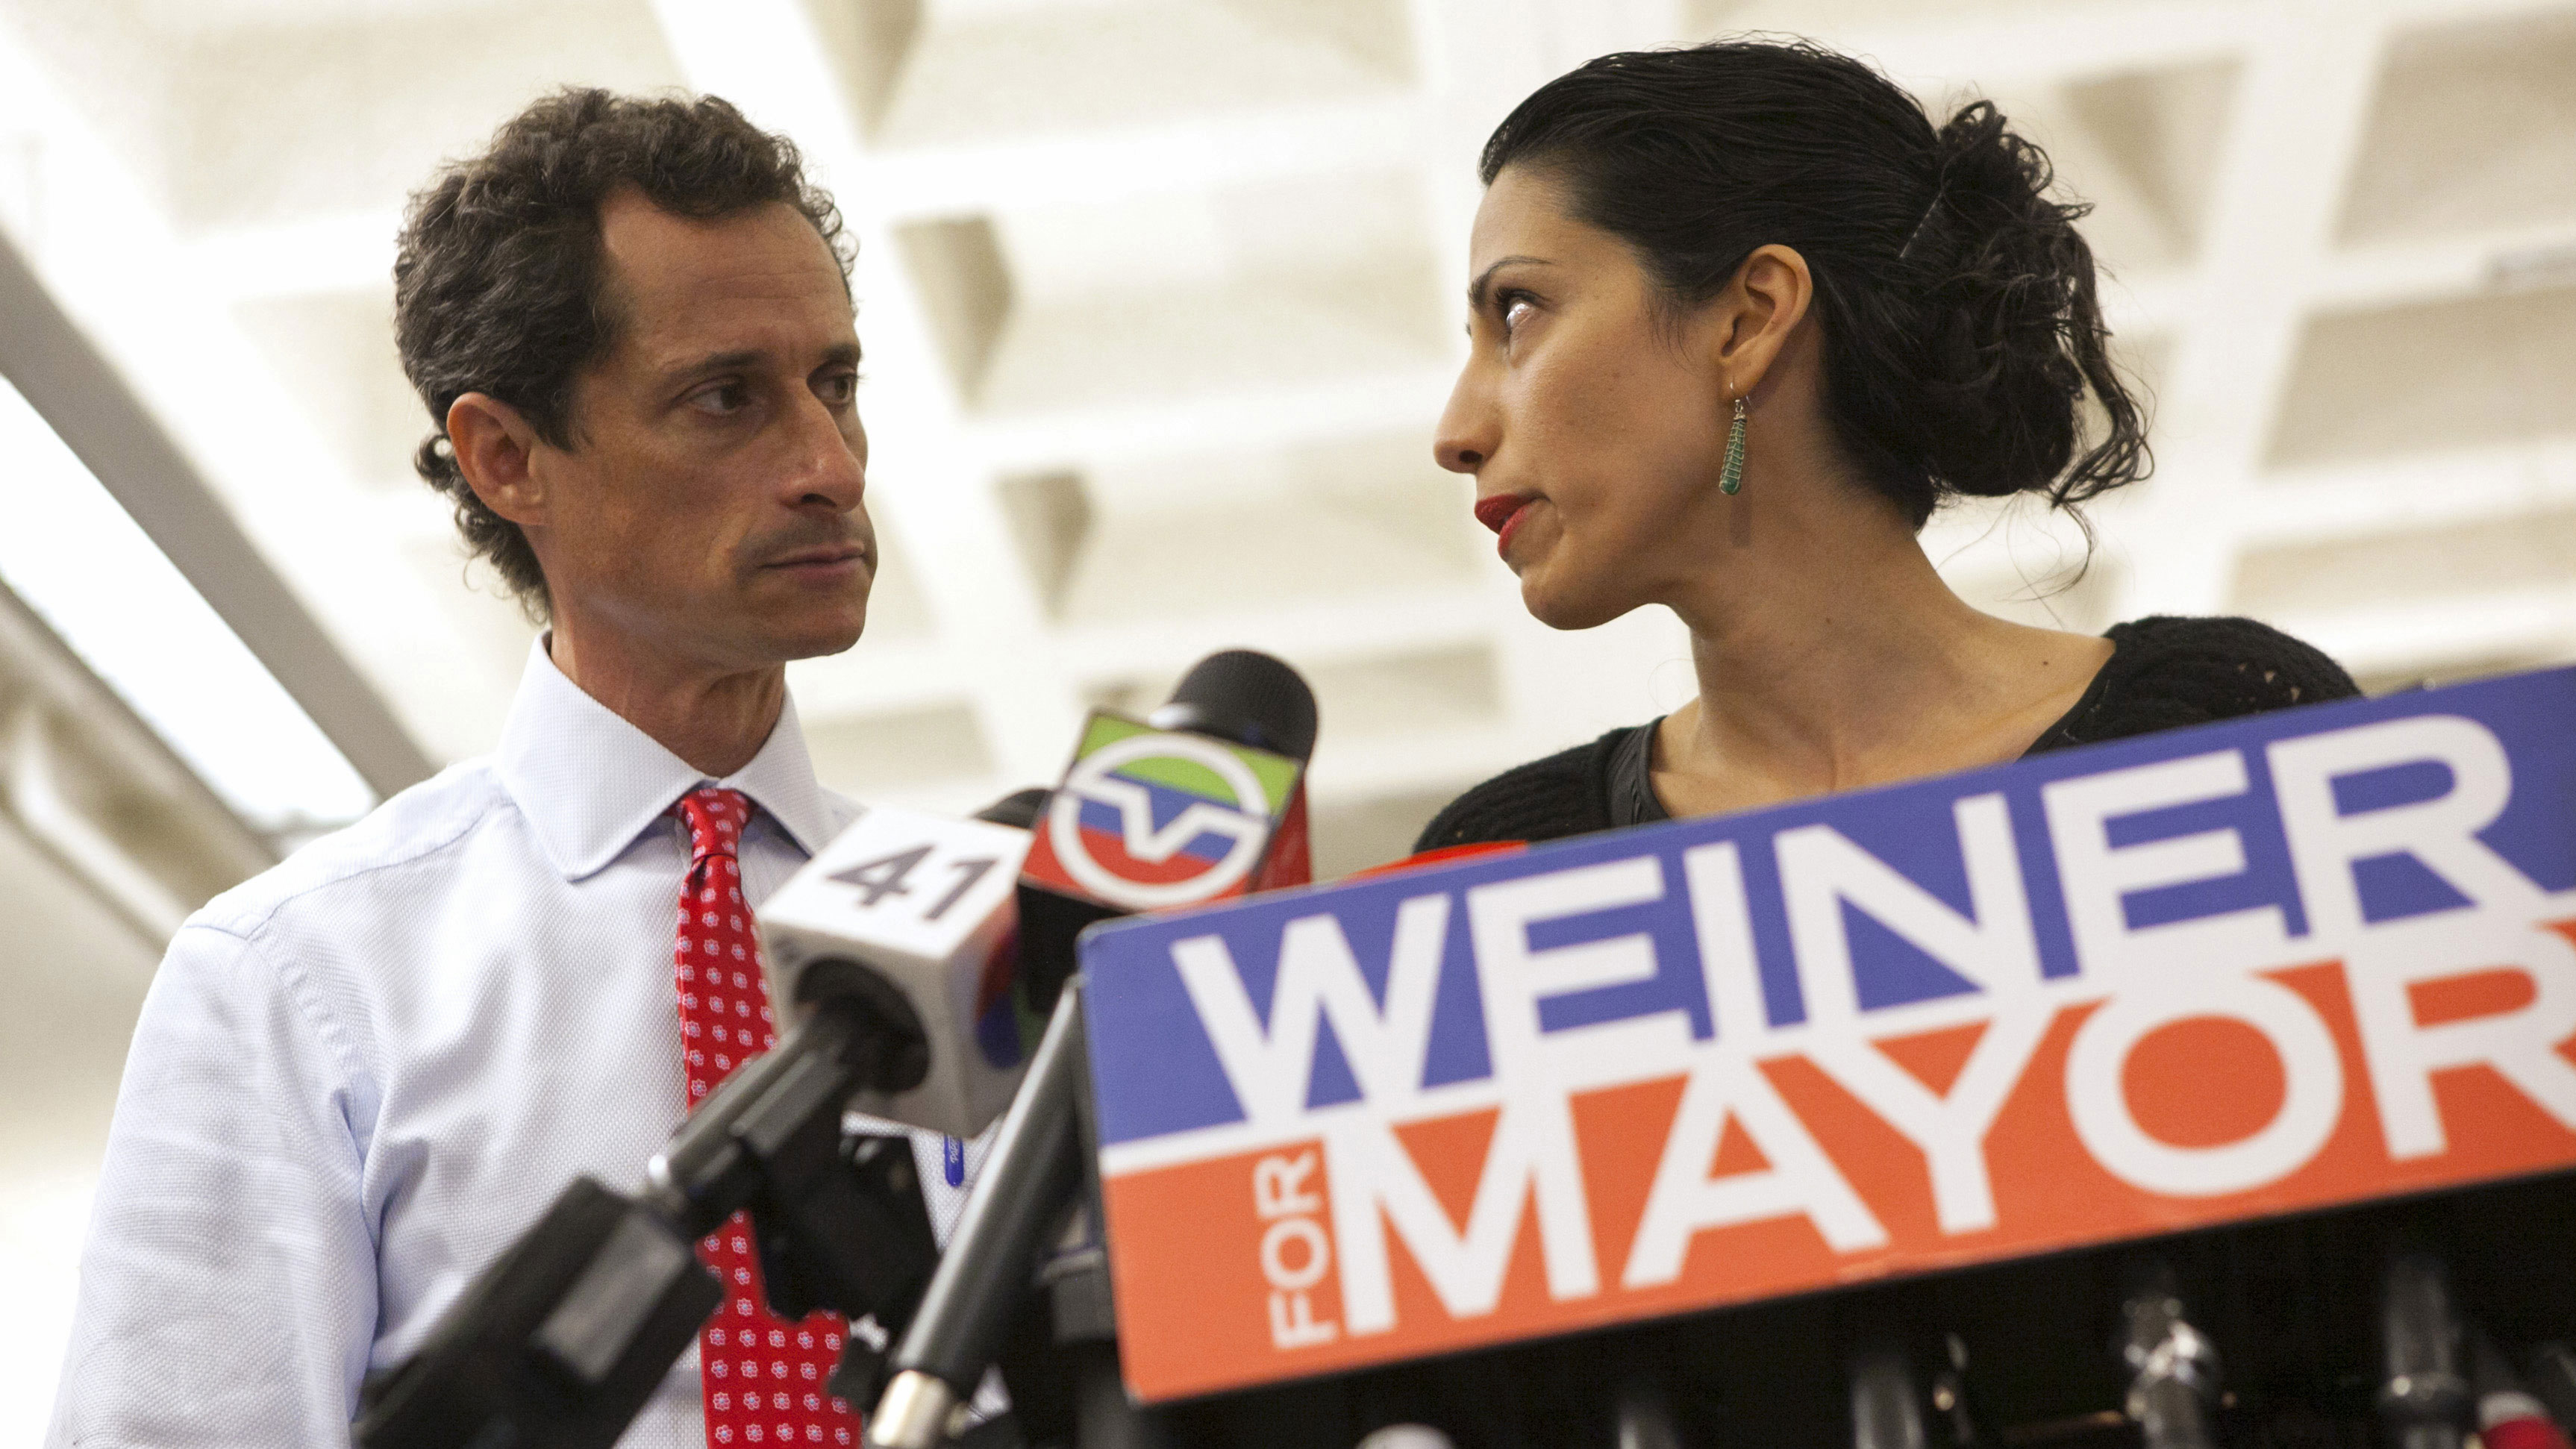 News scandal over Anthony Wiener who is seeking to become New York mayor (Reuters)